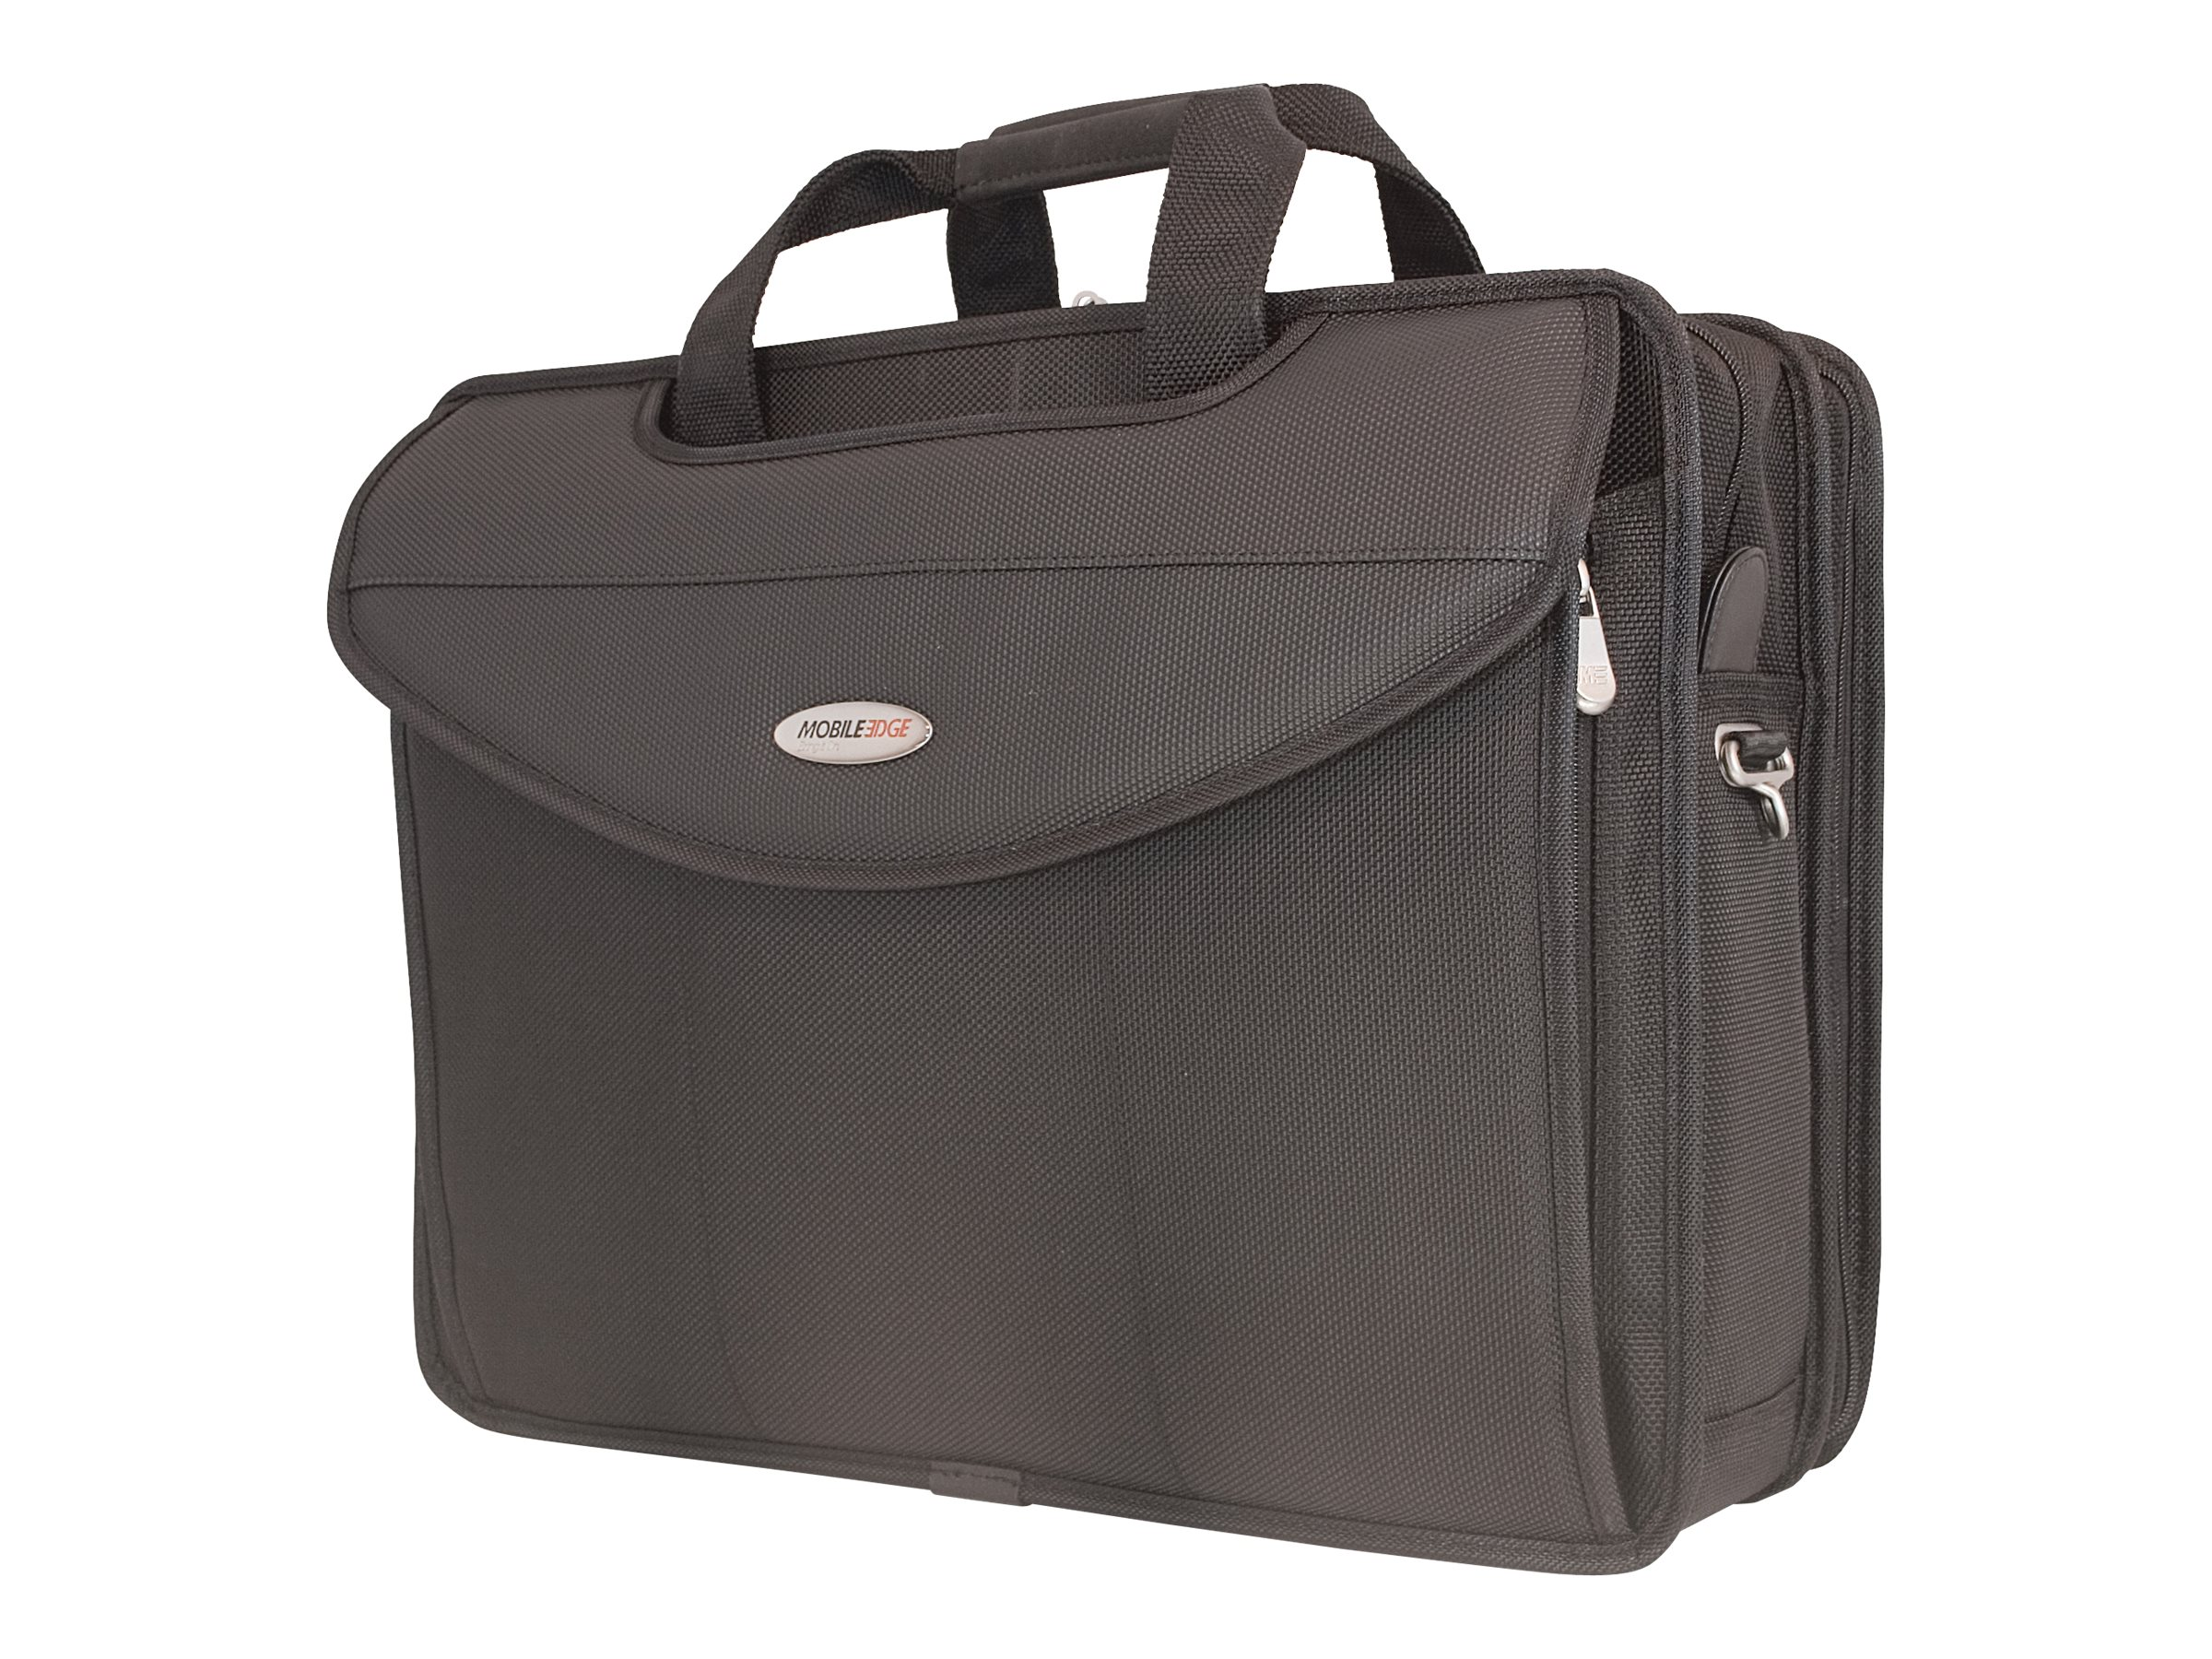 Mobile Edge Premium V-Load - 17, Black, MEV17P, 6101419, Carrying Cases - Notebook